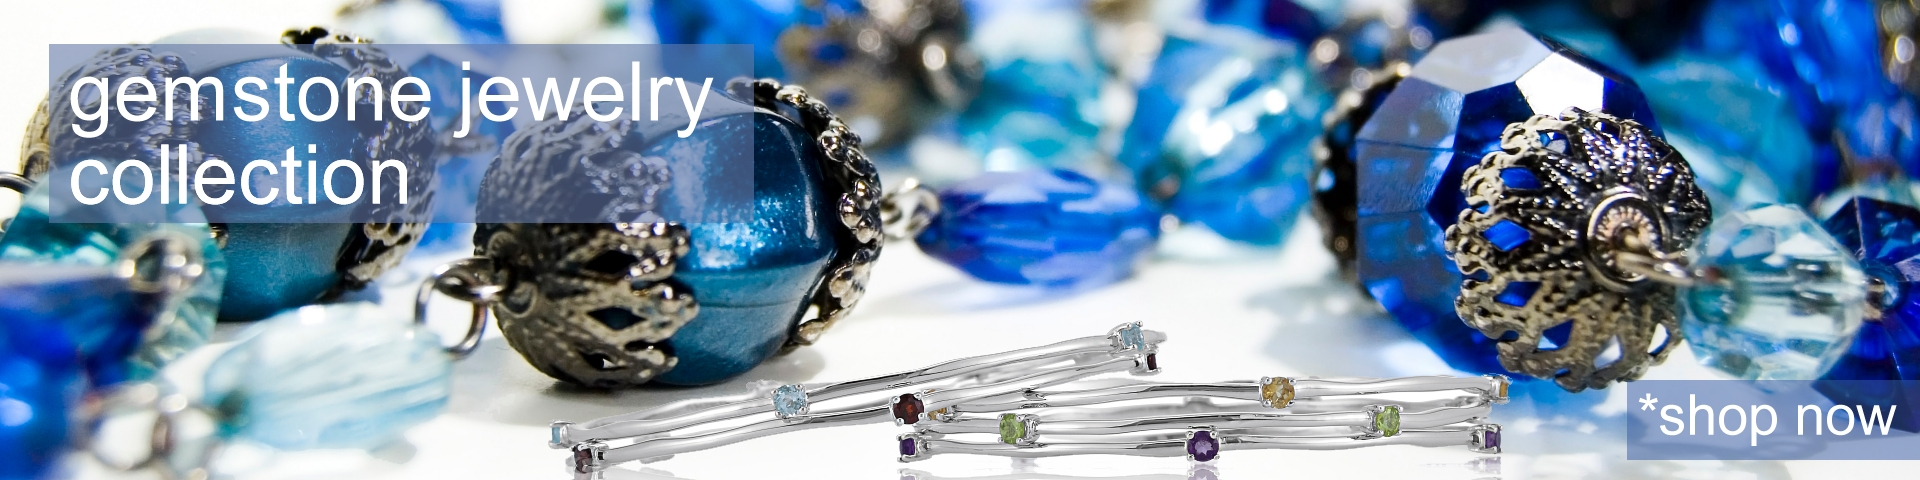 shop gemstone jewelry